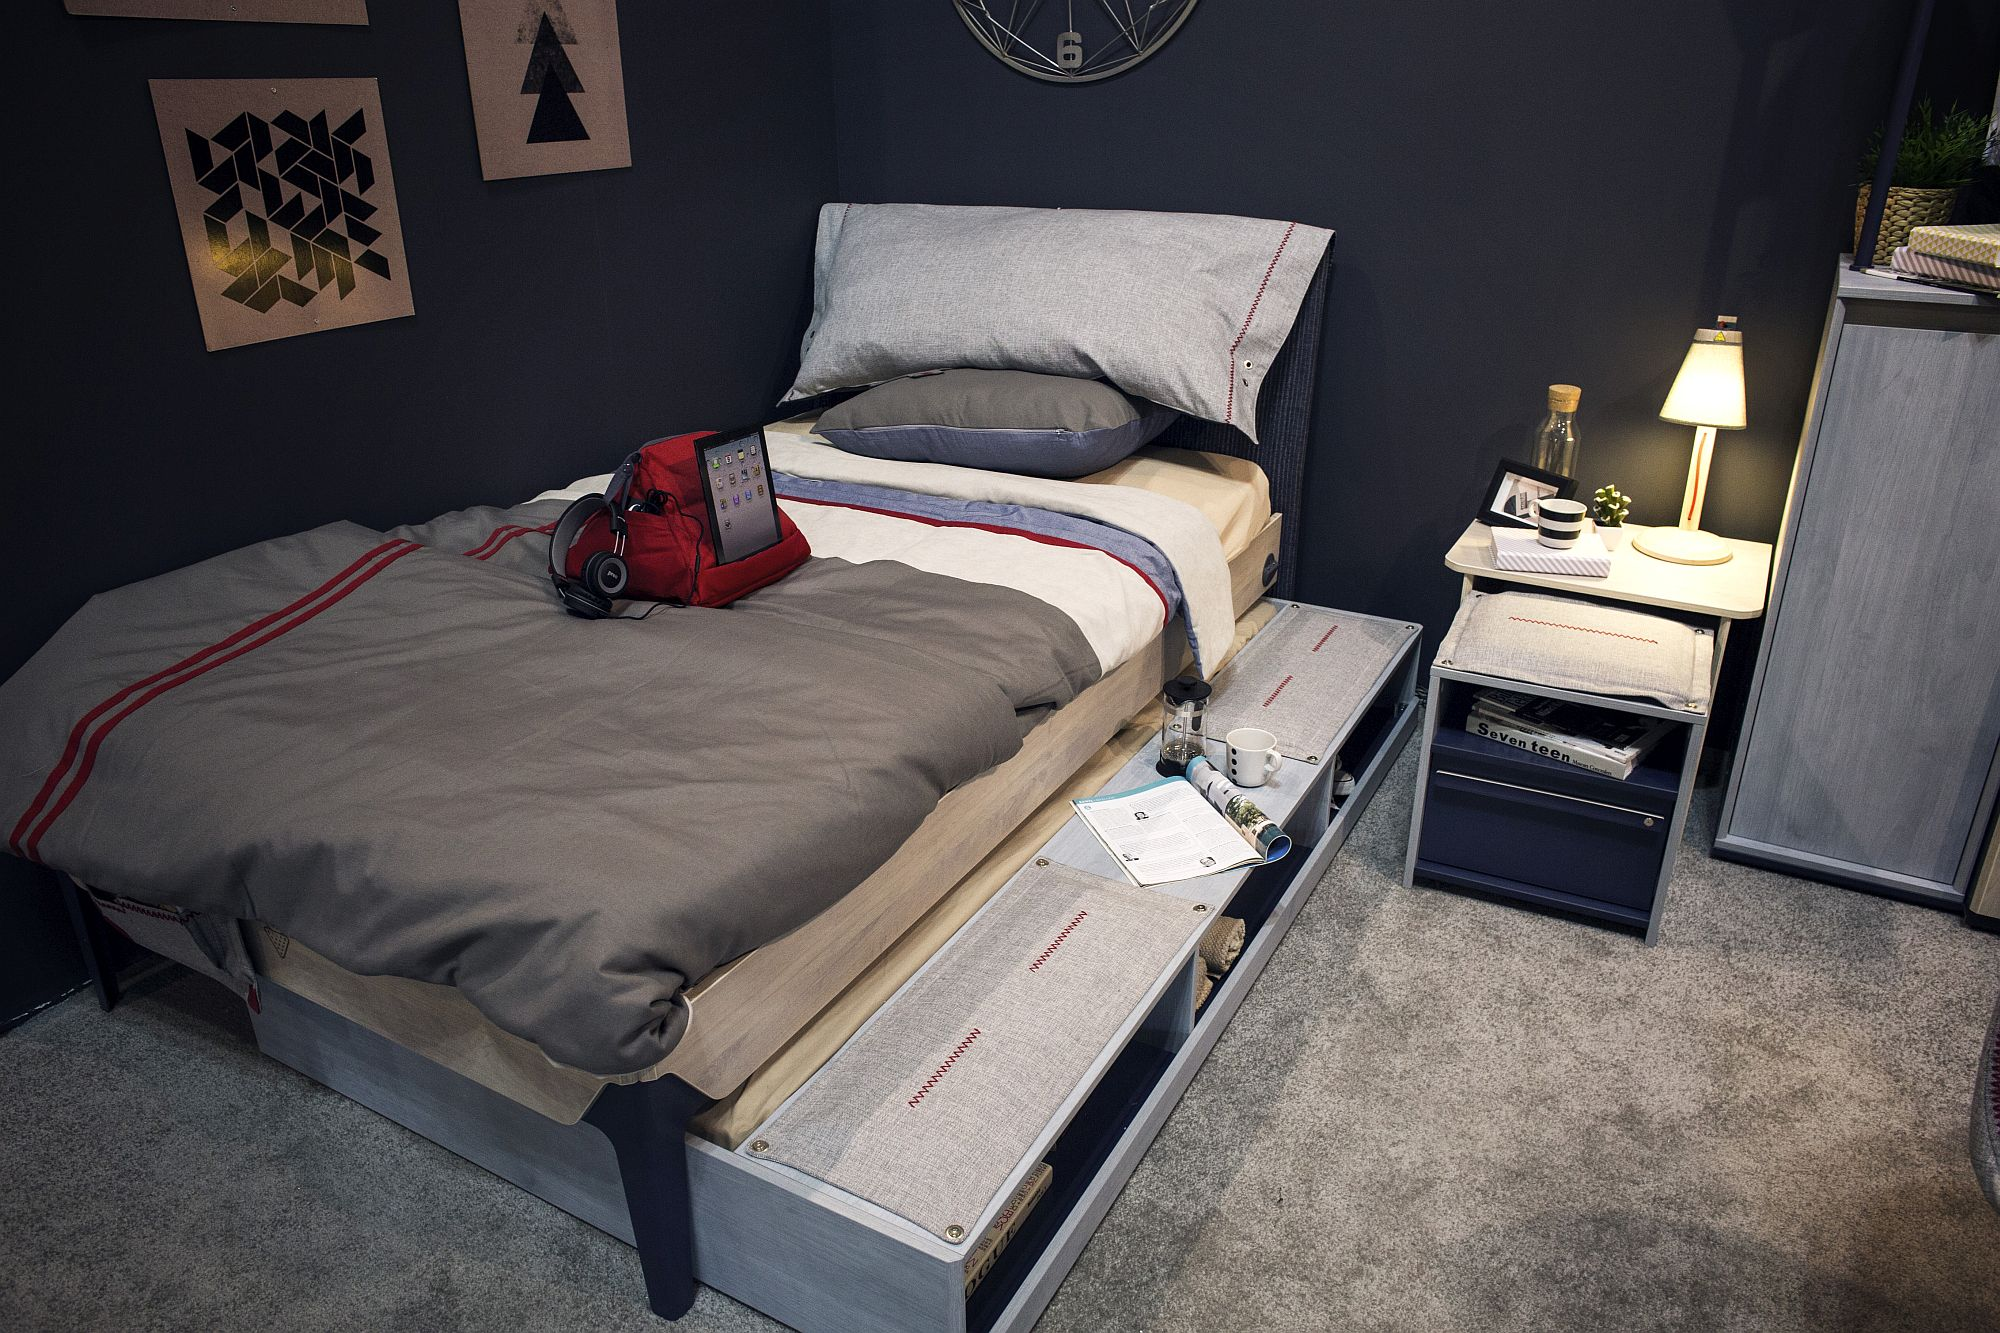 Space-savvy kids' bed with storage space underneath